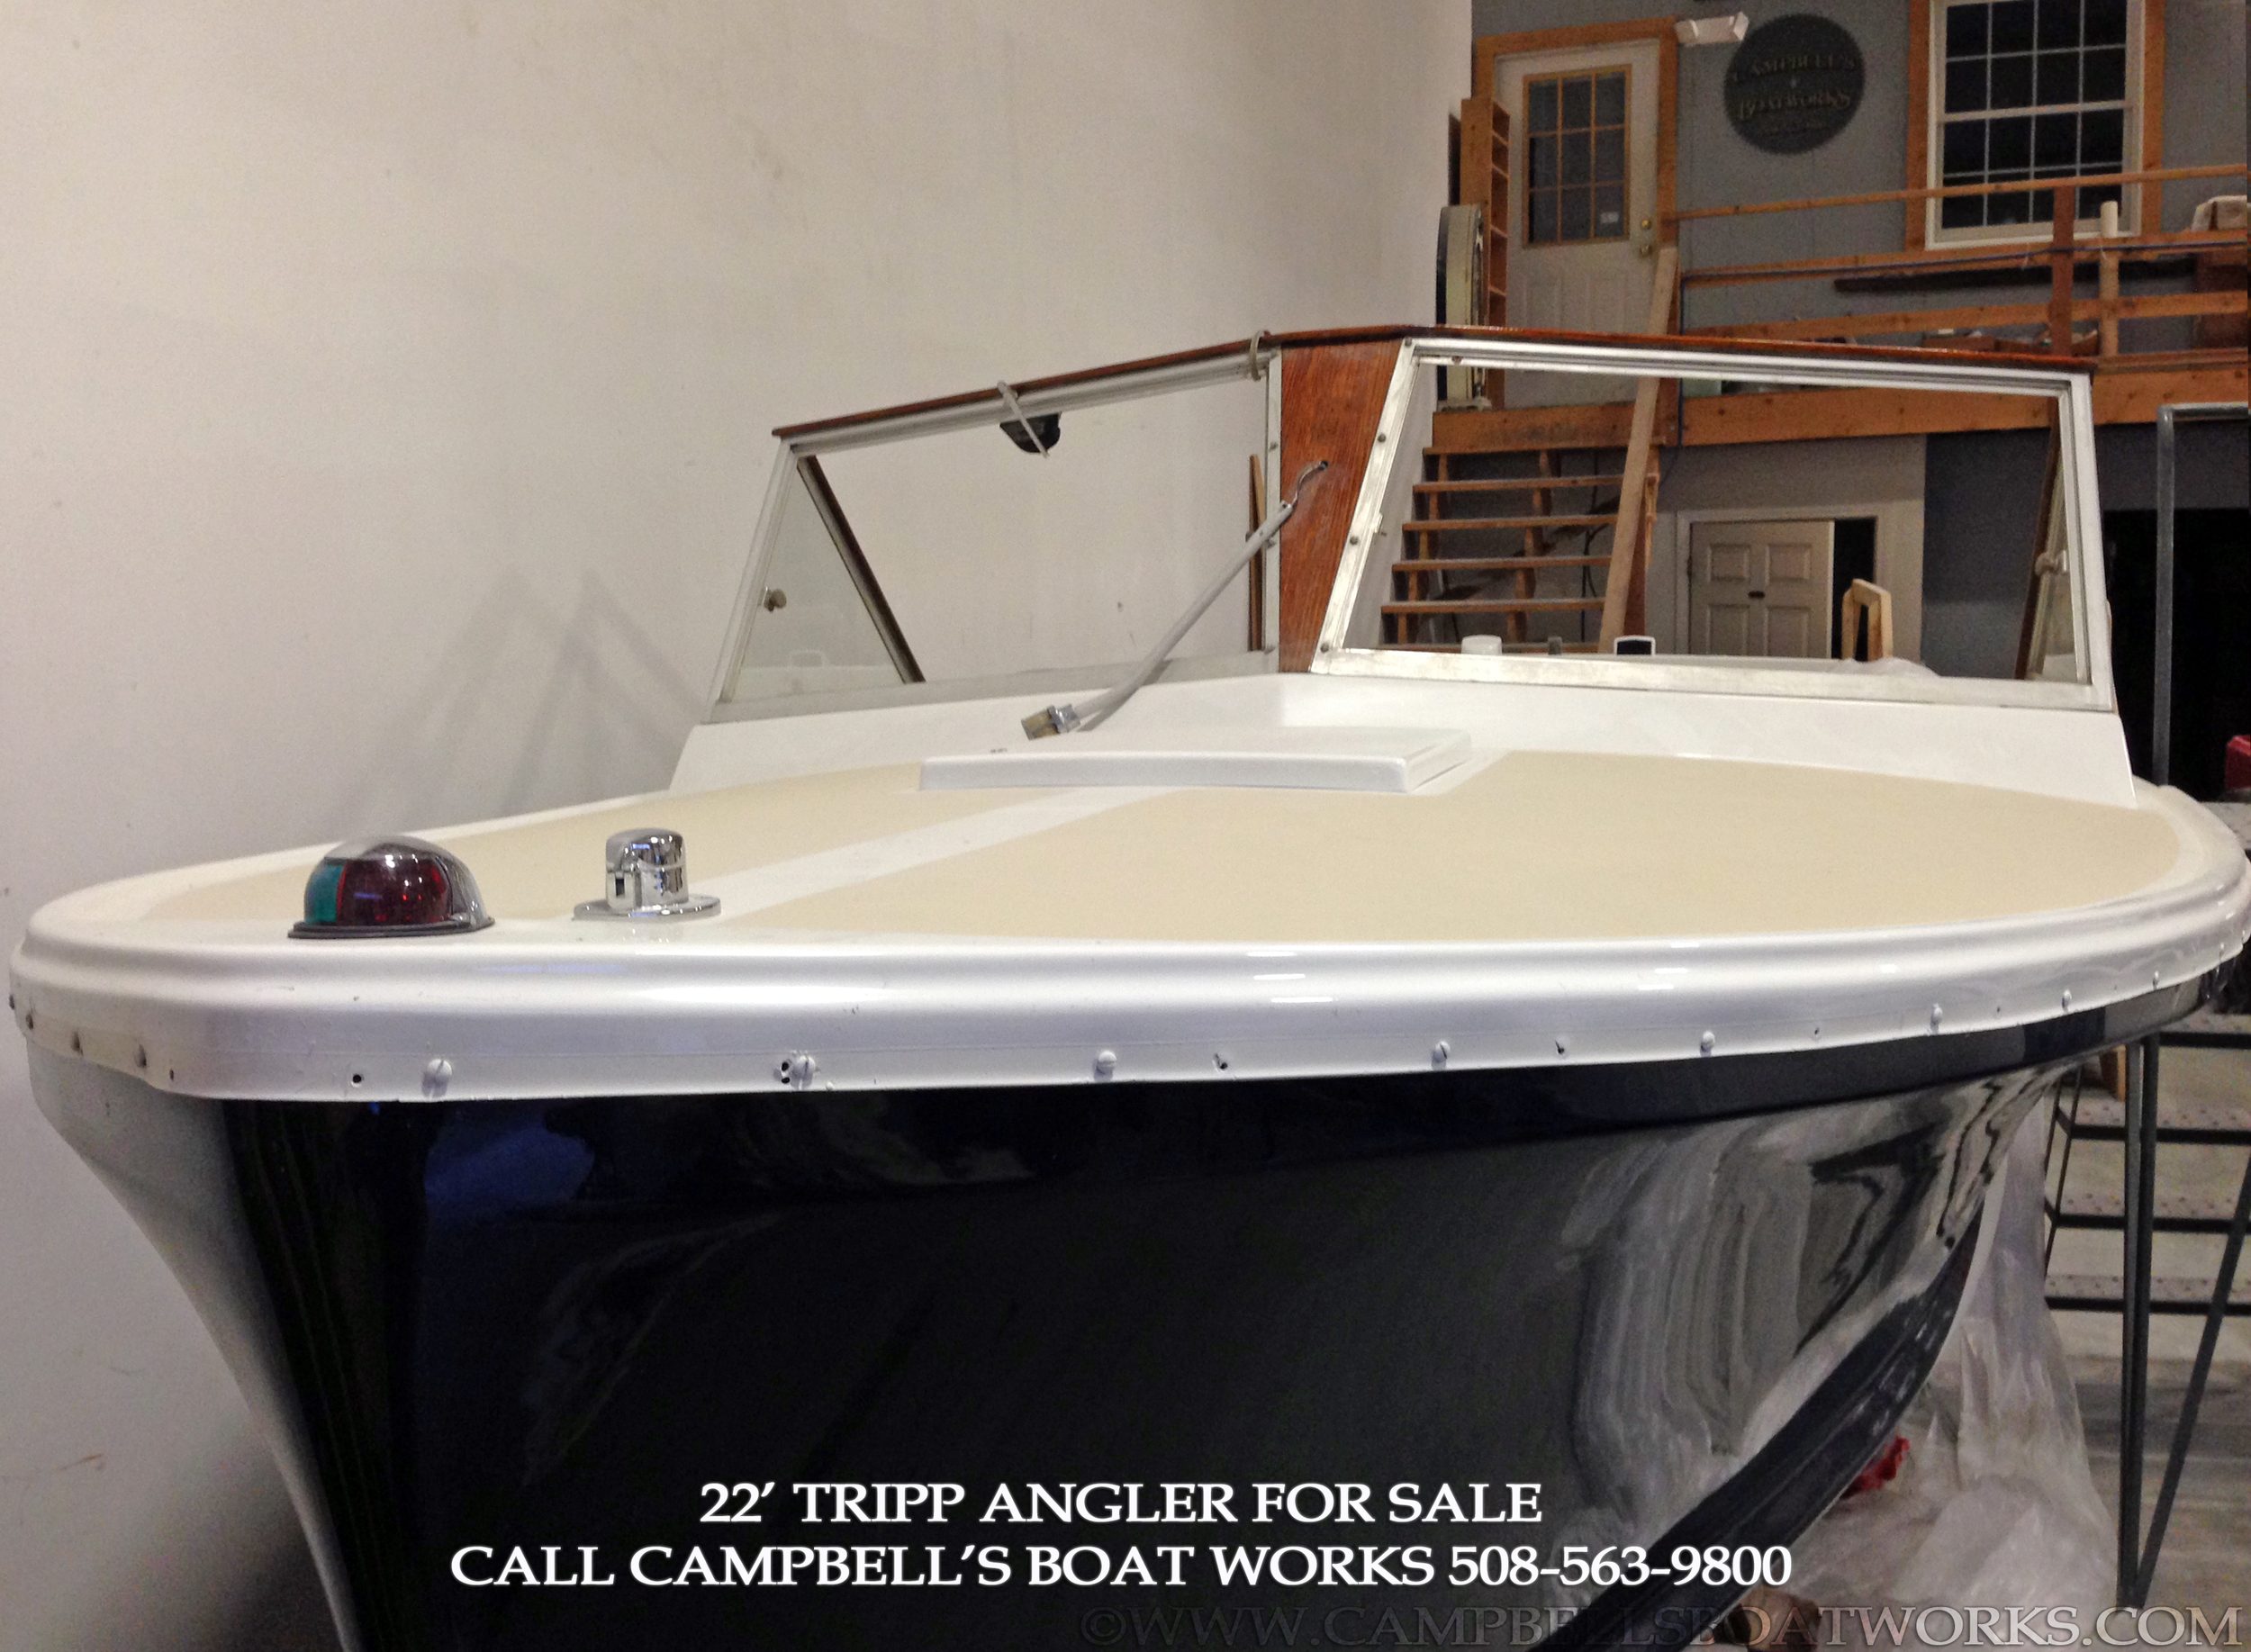 Downeast Bass Boat For Sale 22' Tripp Angler